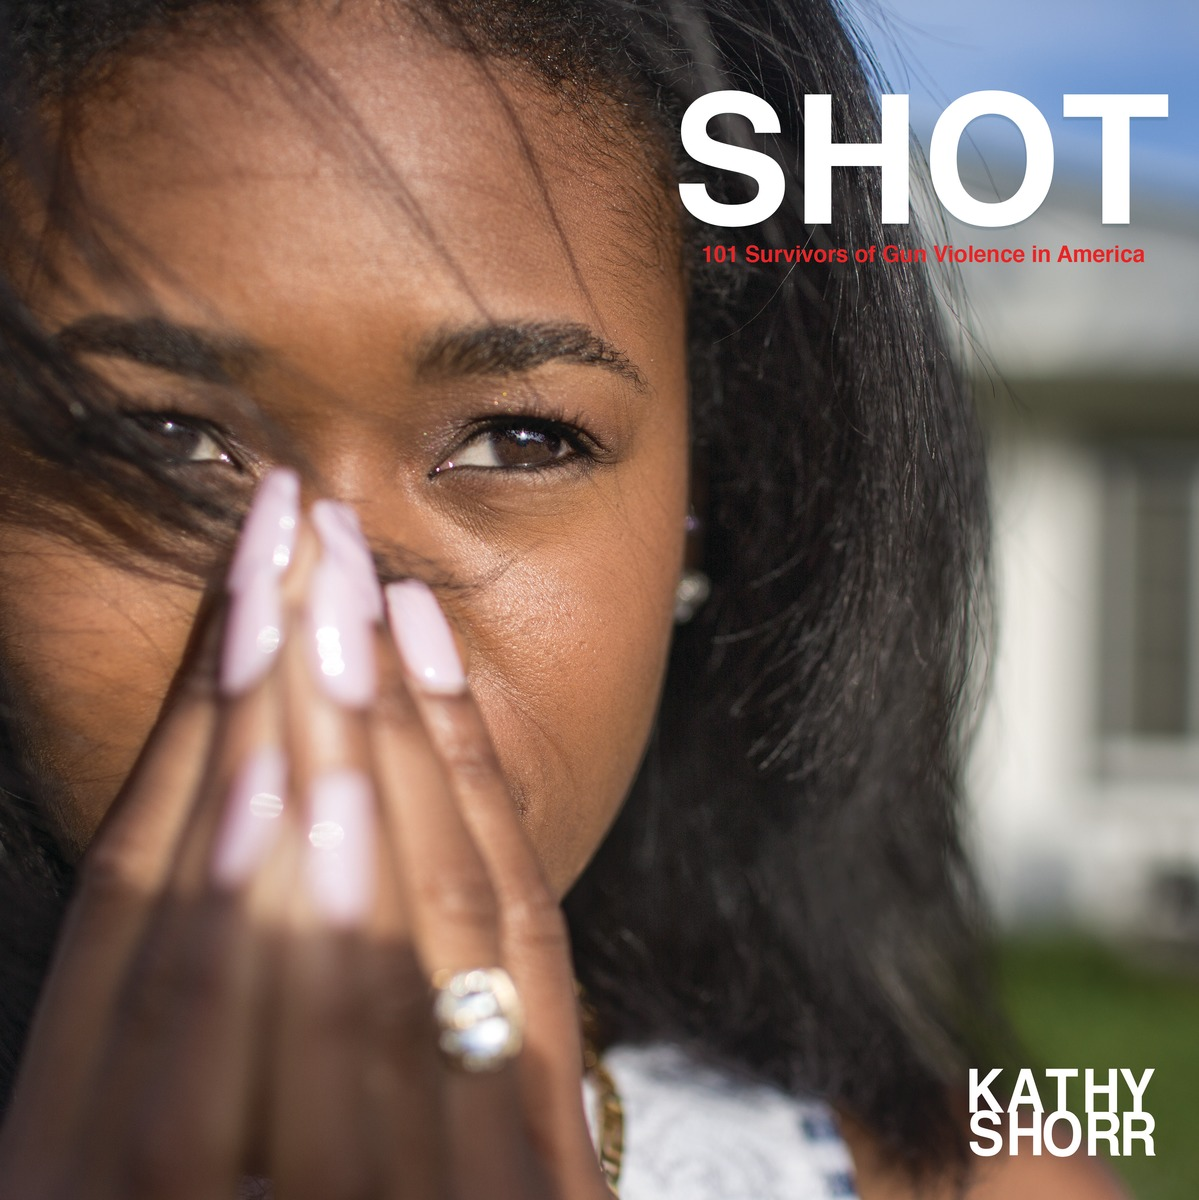 powerHouse Books Launch: SHOT: 101 Survivors of Gun Violence in America by Kathy Shorr in conversation with Lyle Rexer